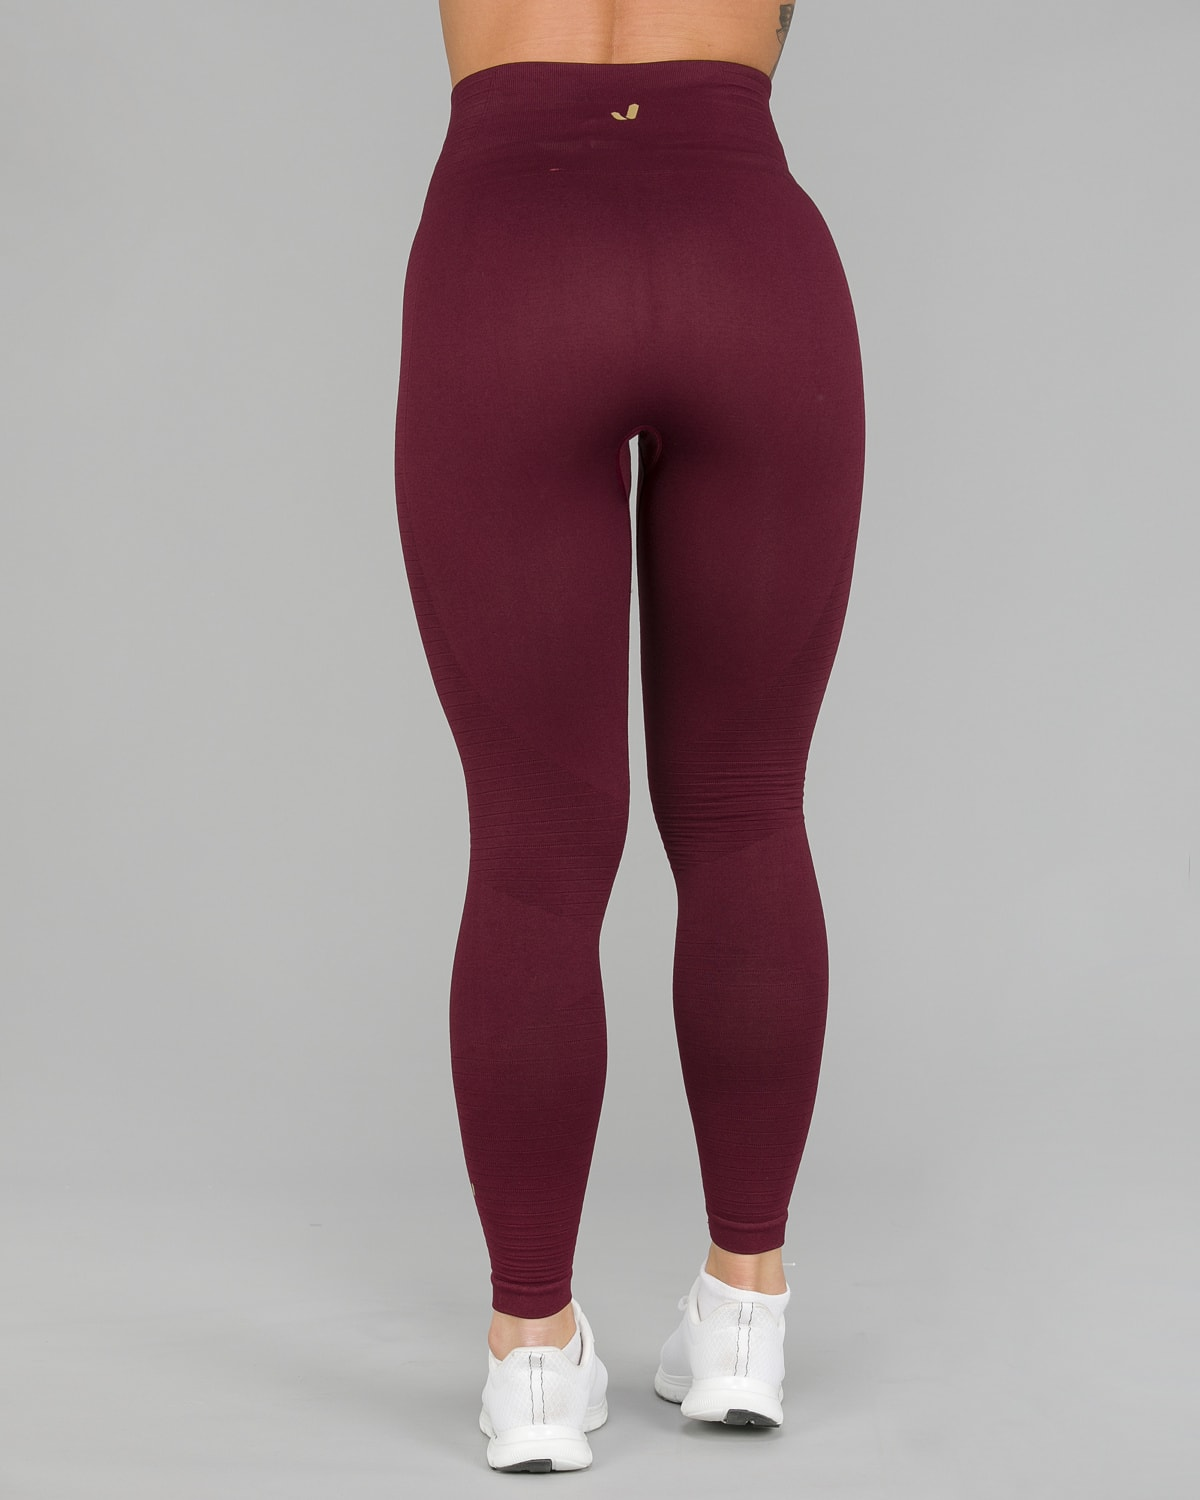 Jerf Gela 2.0 tights Maroon4